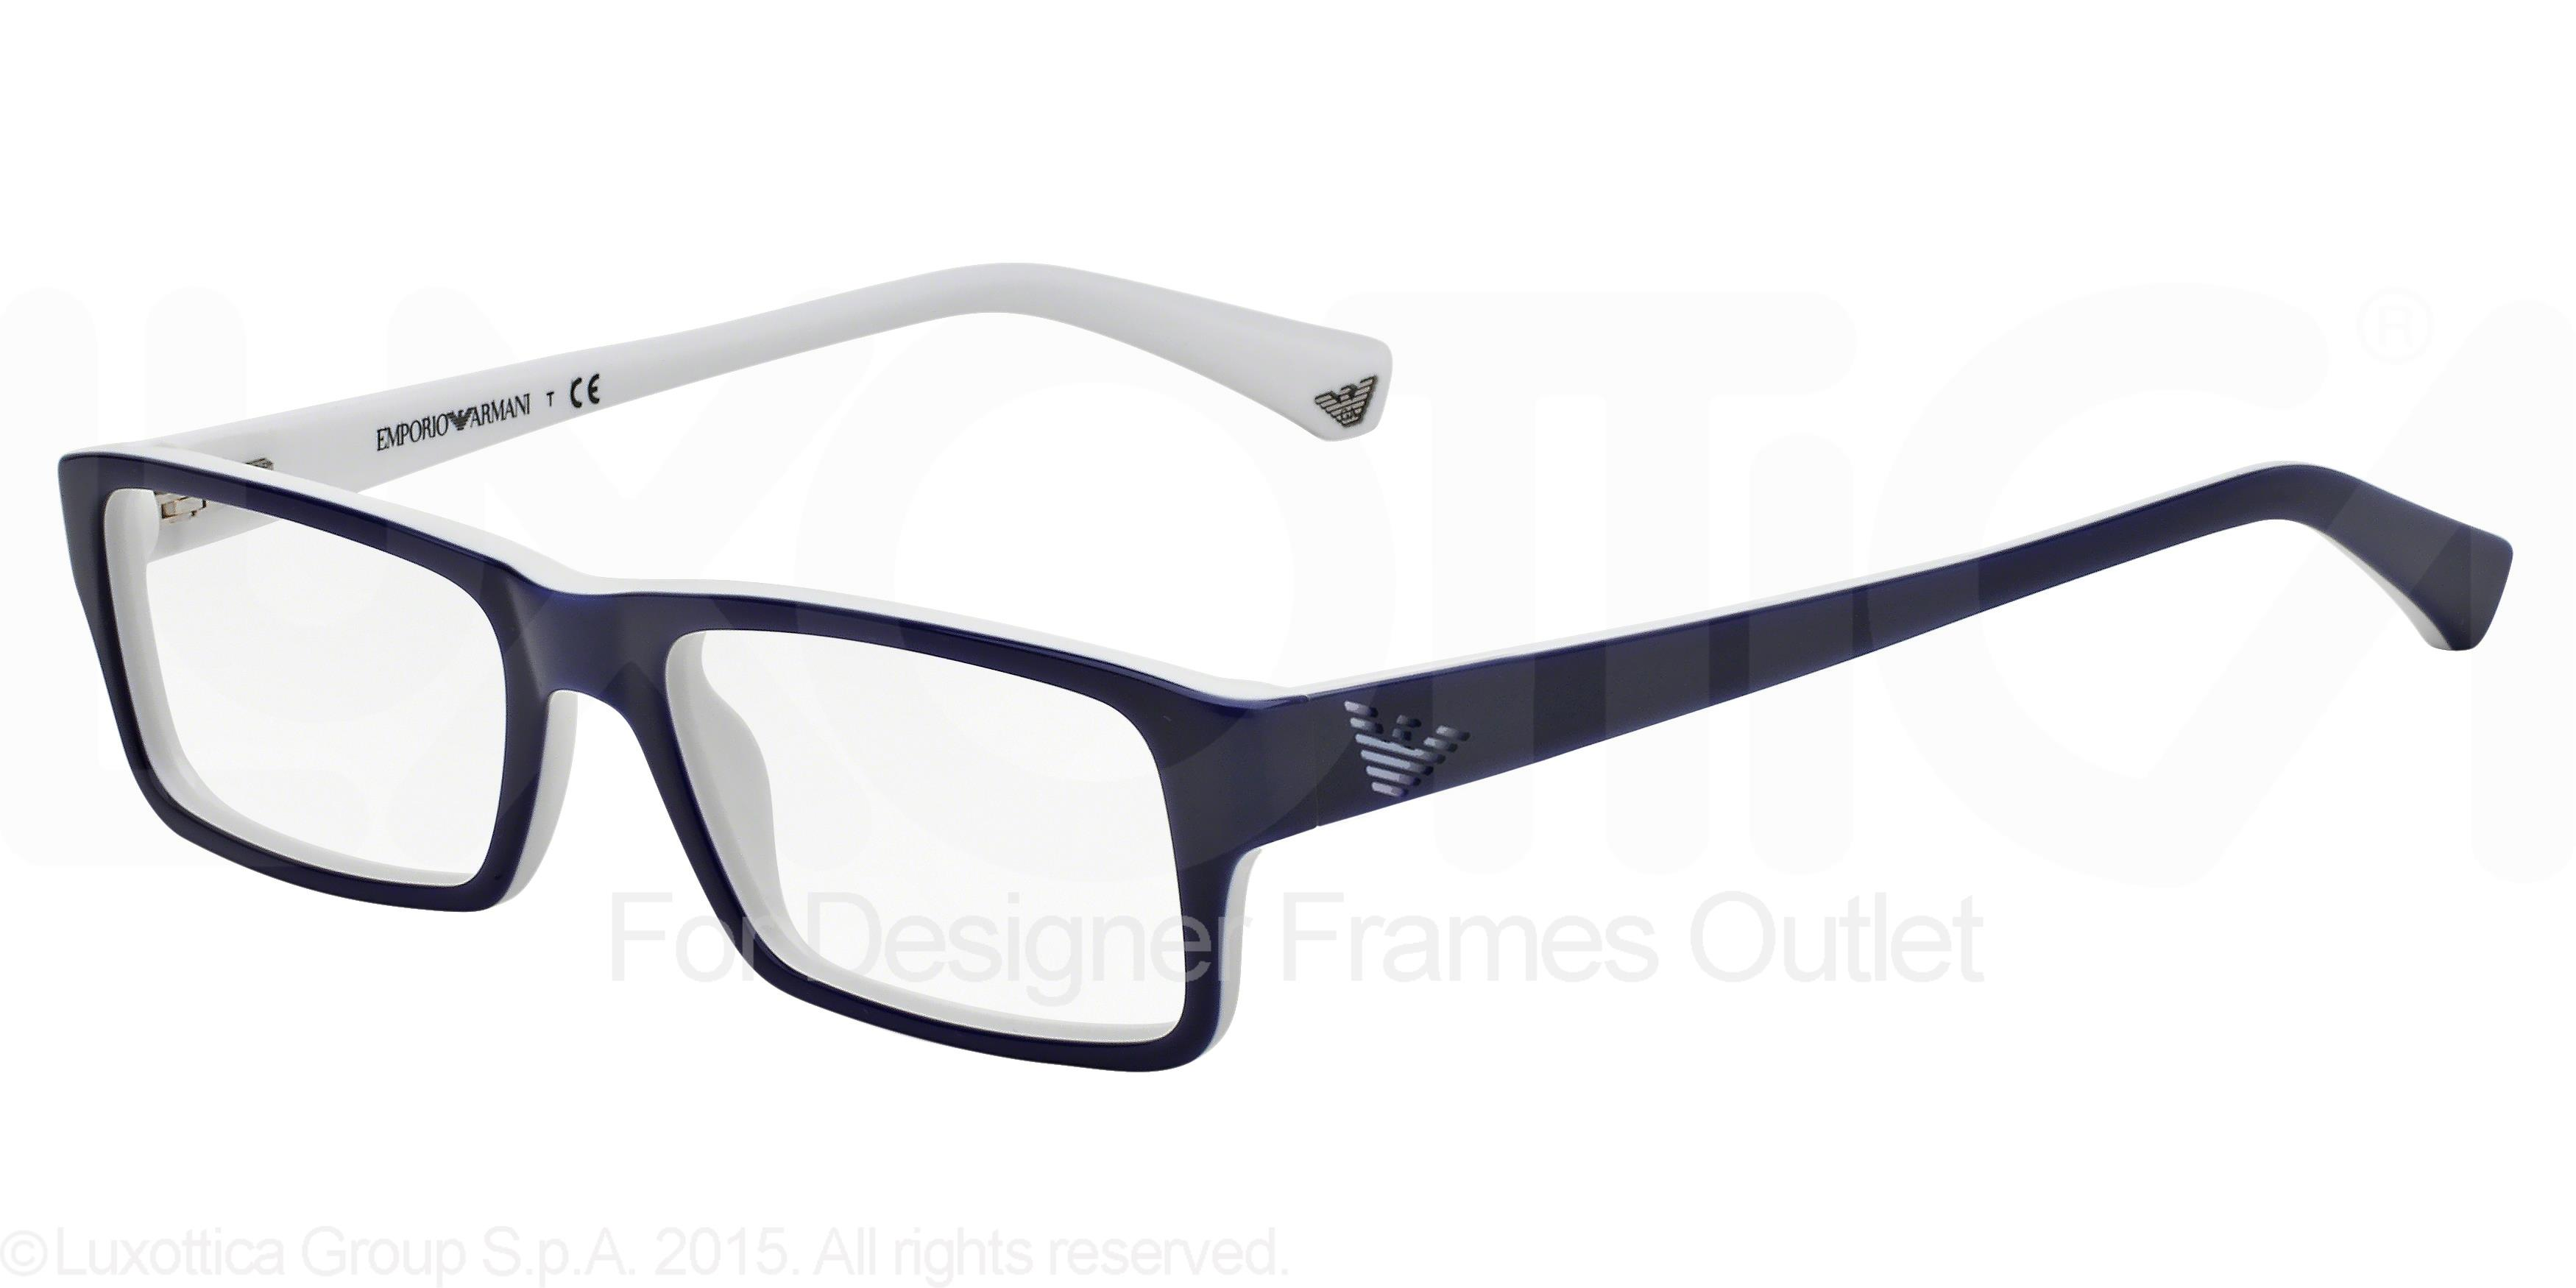 9e3856ac4f Giorgio Armani Glasses Frames Prices - Bitterroot Public Library